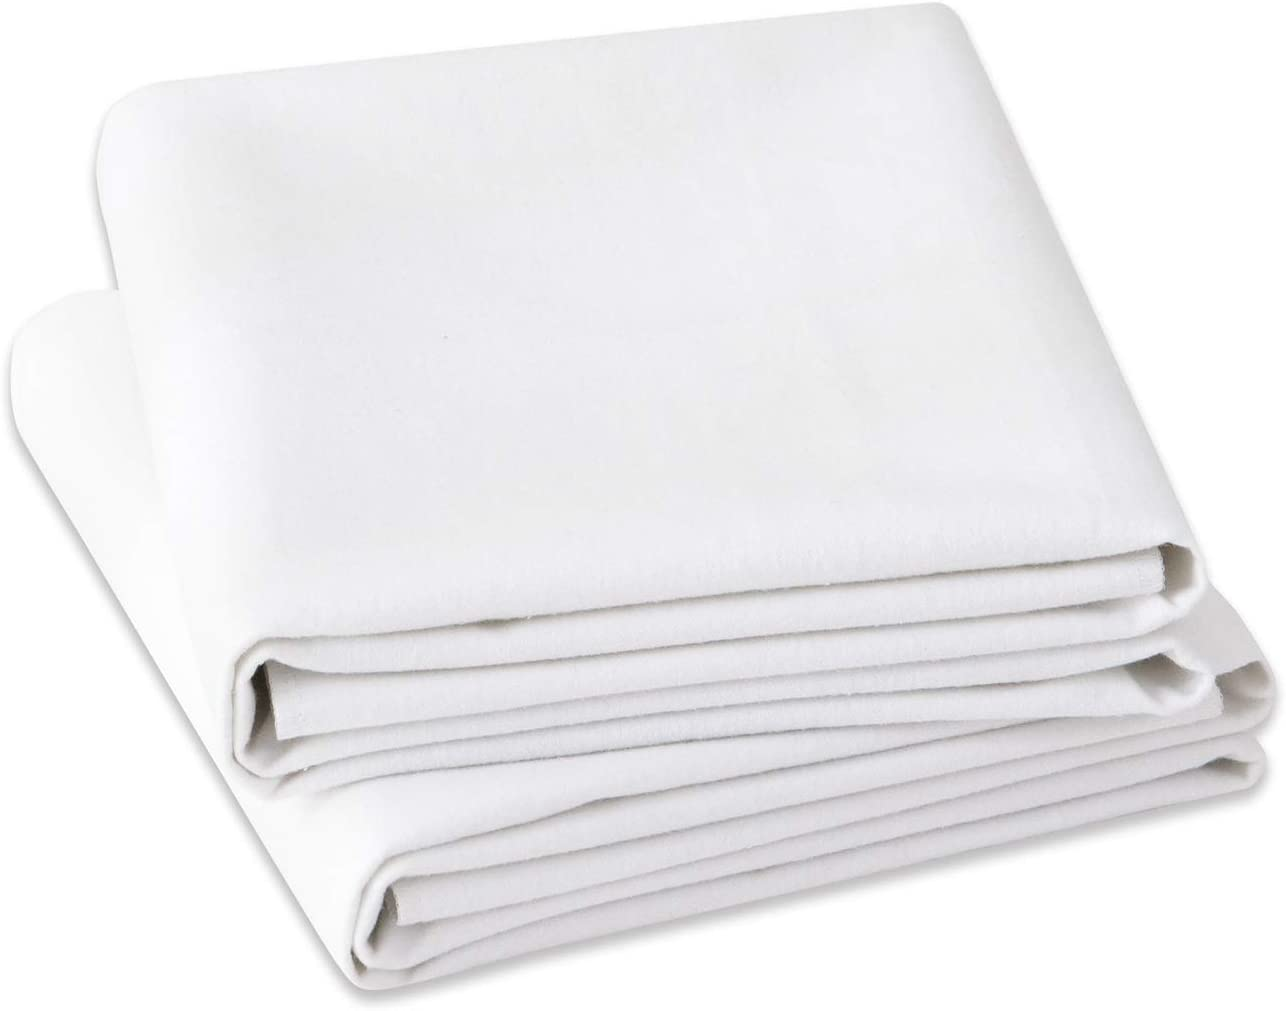 """Shunjie.Home Fitted Sheet Queen 2Pack, 400 TC 16"""" Deep Pocket Egyptian Cotton Fitted Sheet (2, Queen)"""